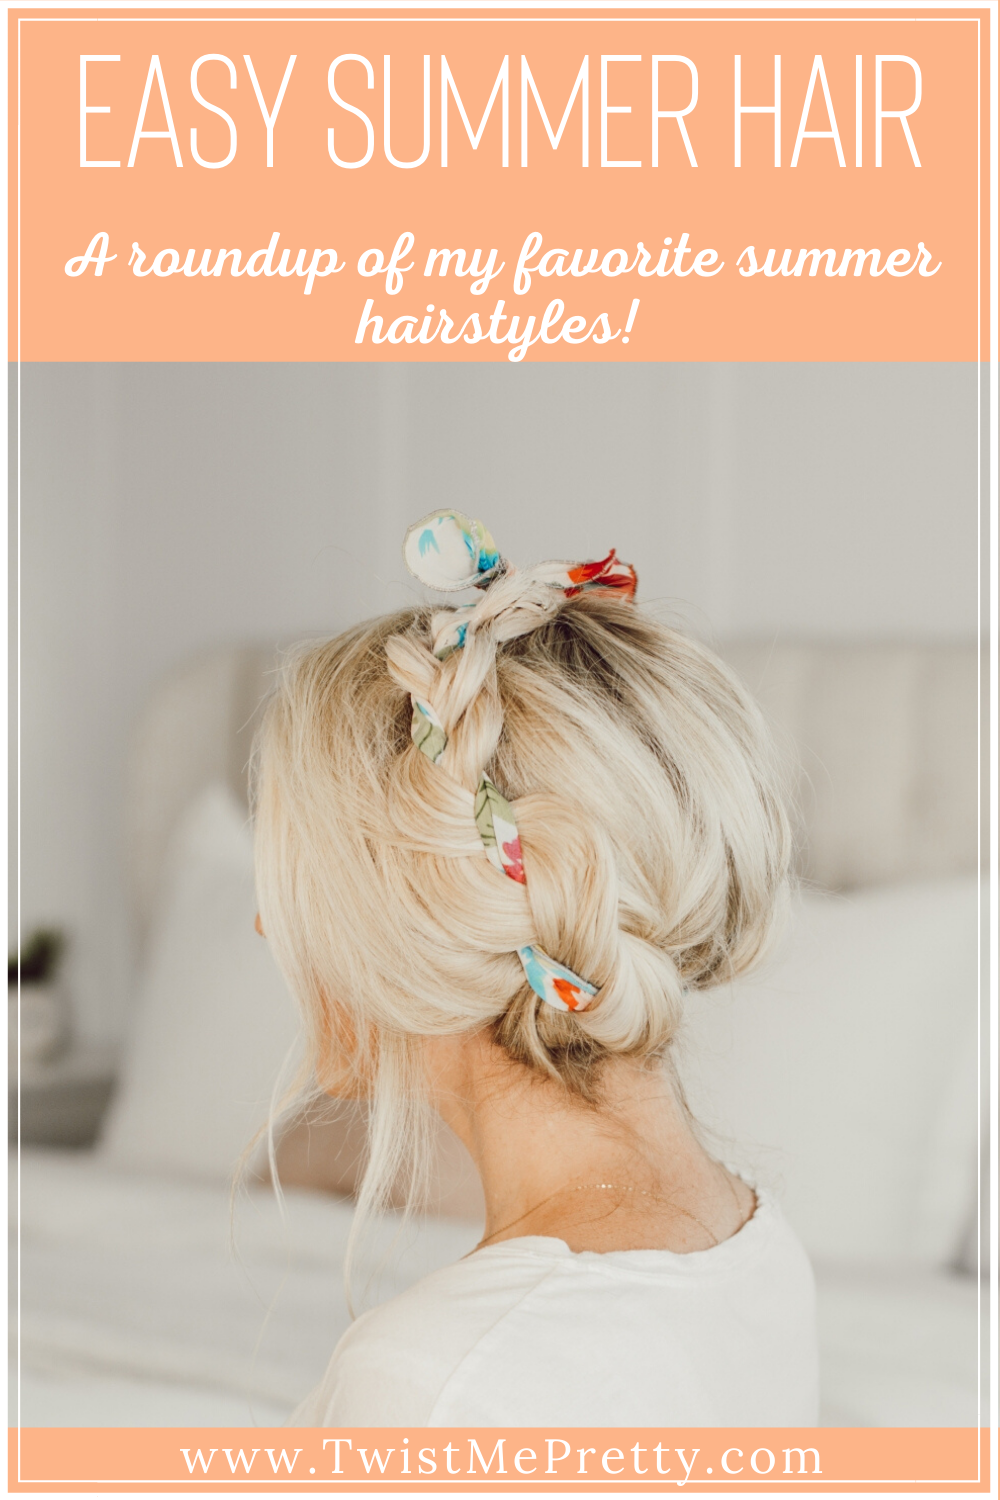 Easy summer hair. A roundup of my favorite summer hairstyles. www.twistmepretty.com